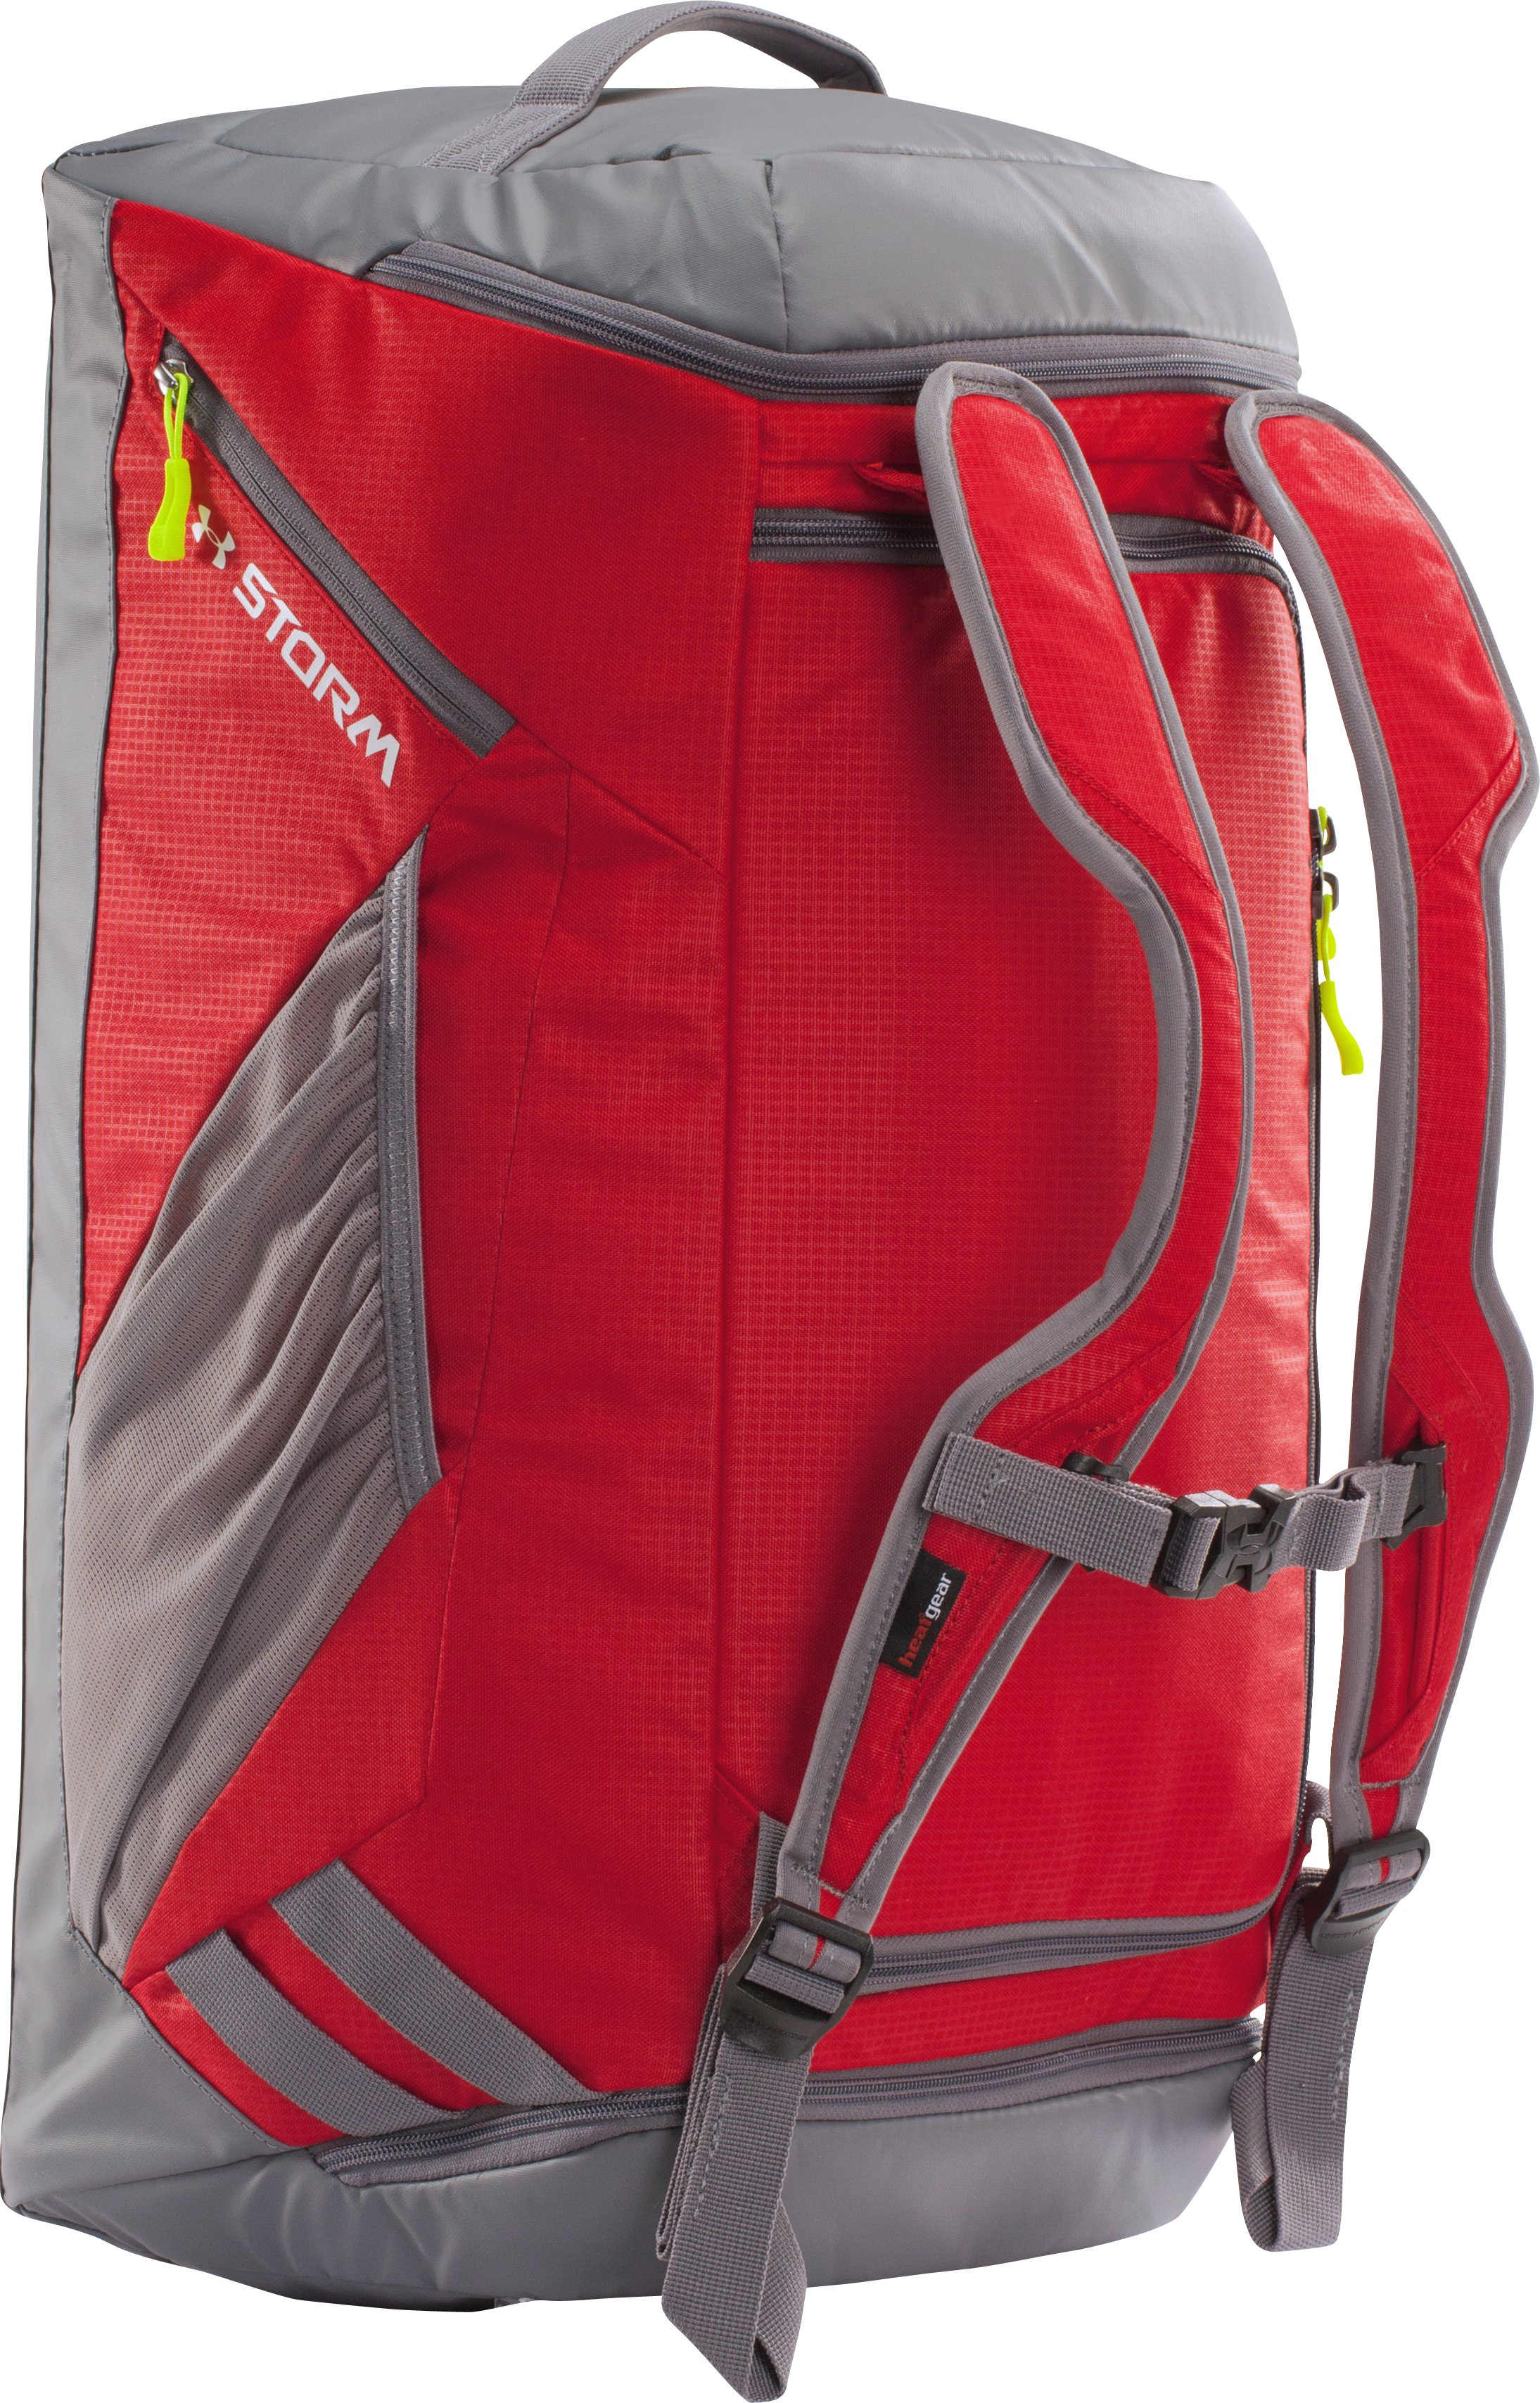 UA Storm Contain Backpack Duffle, Red, undefined